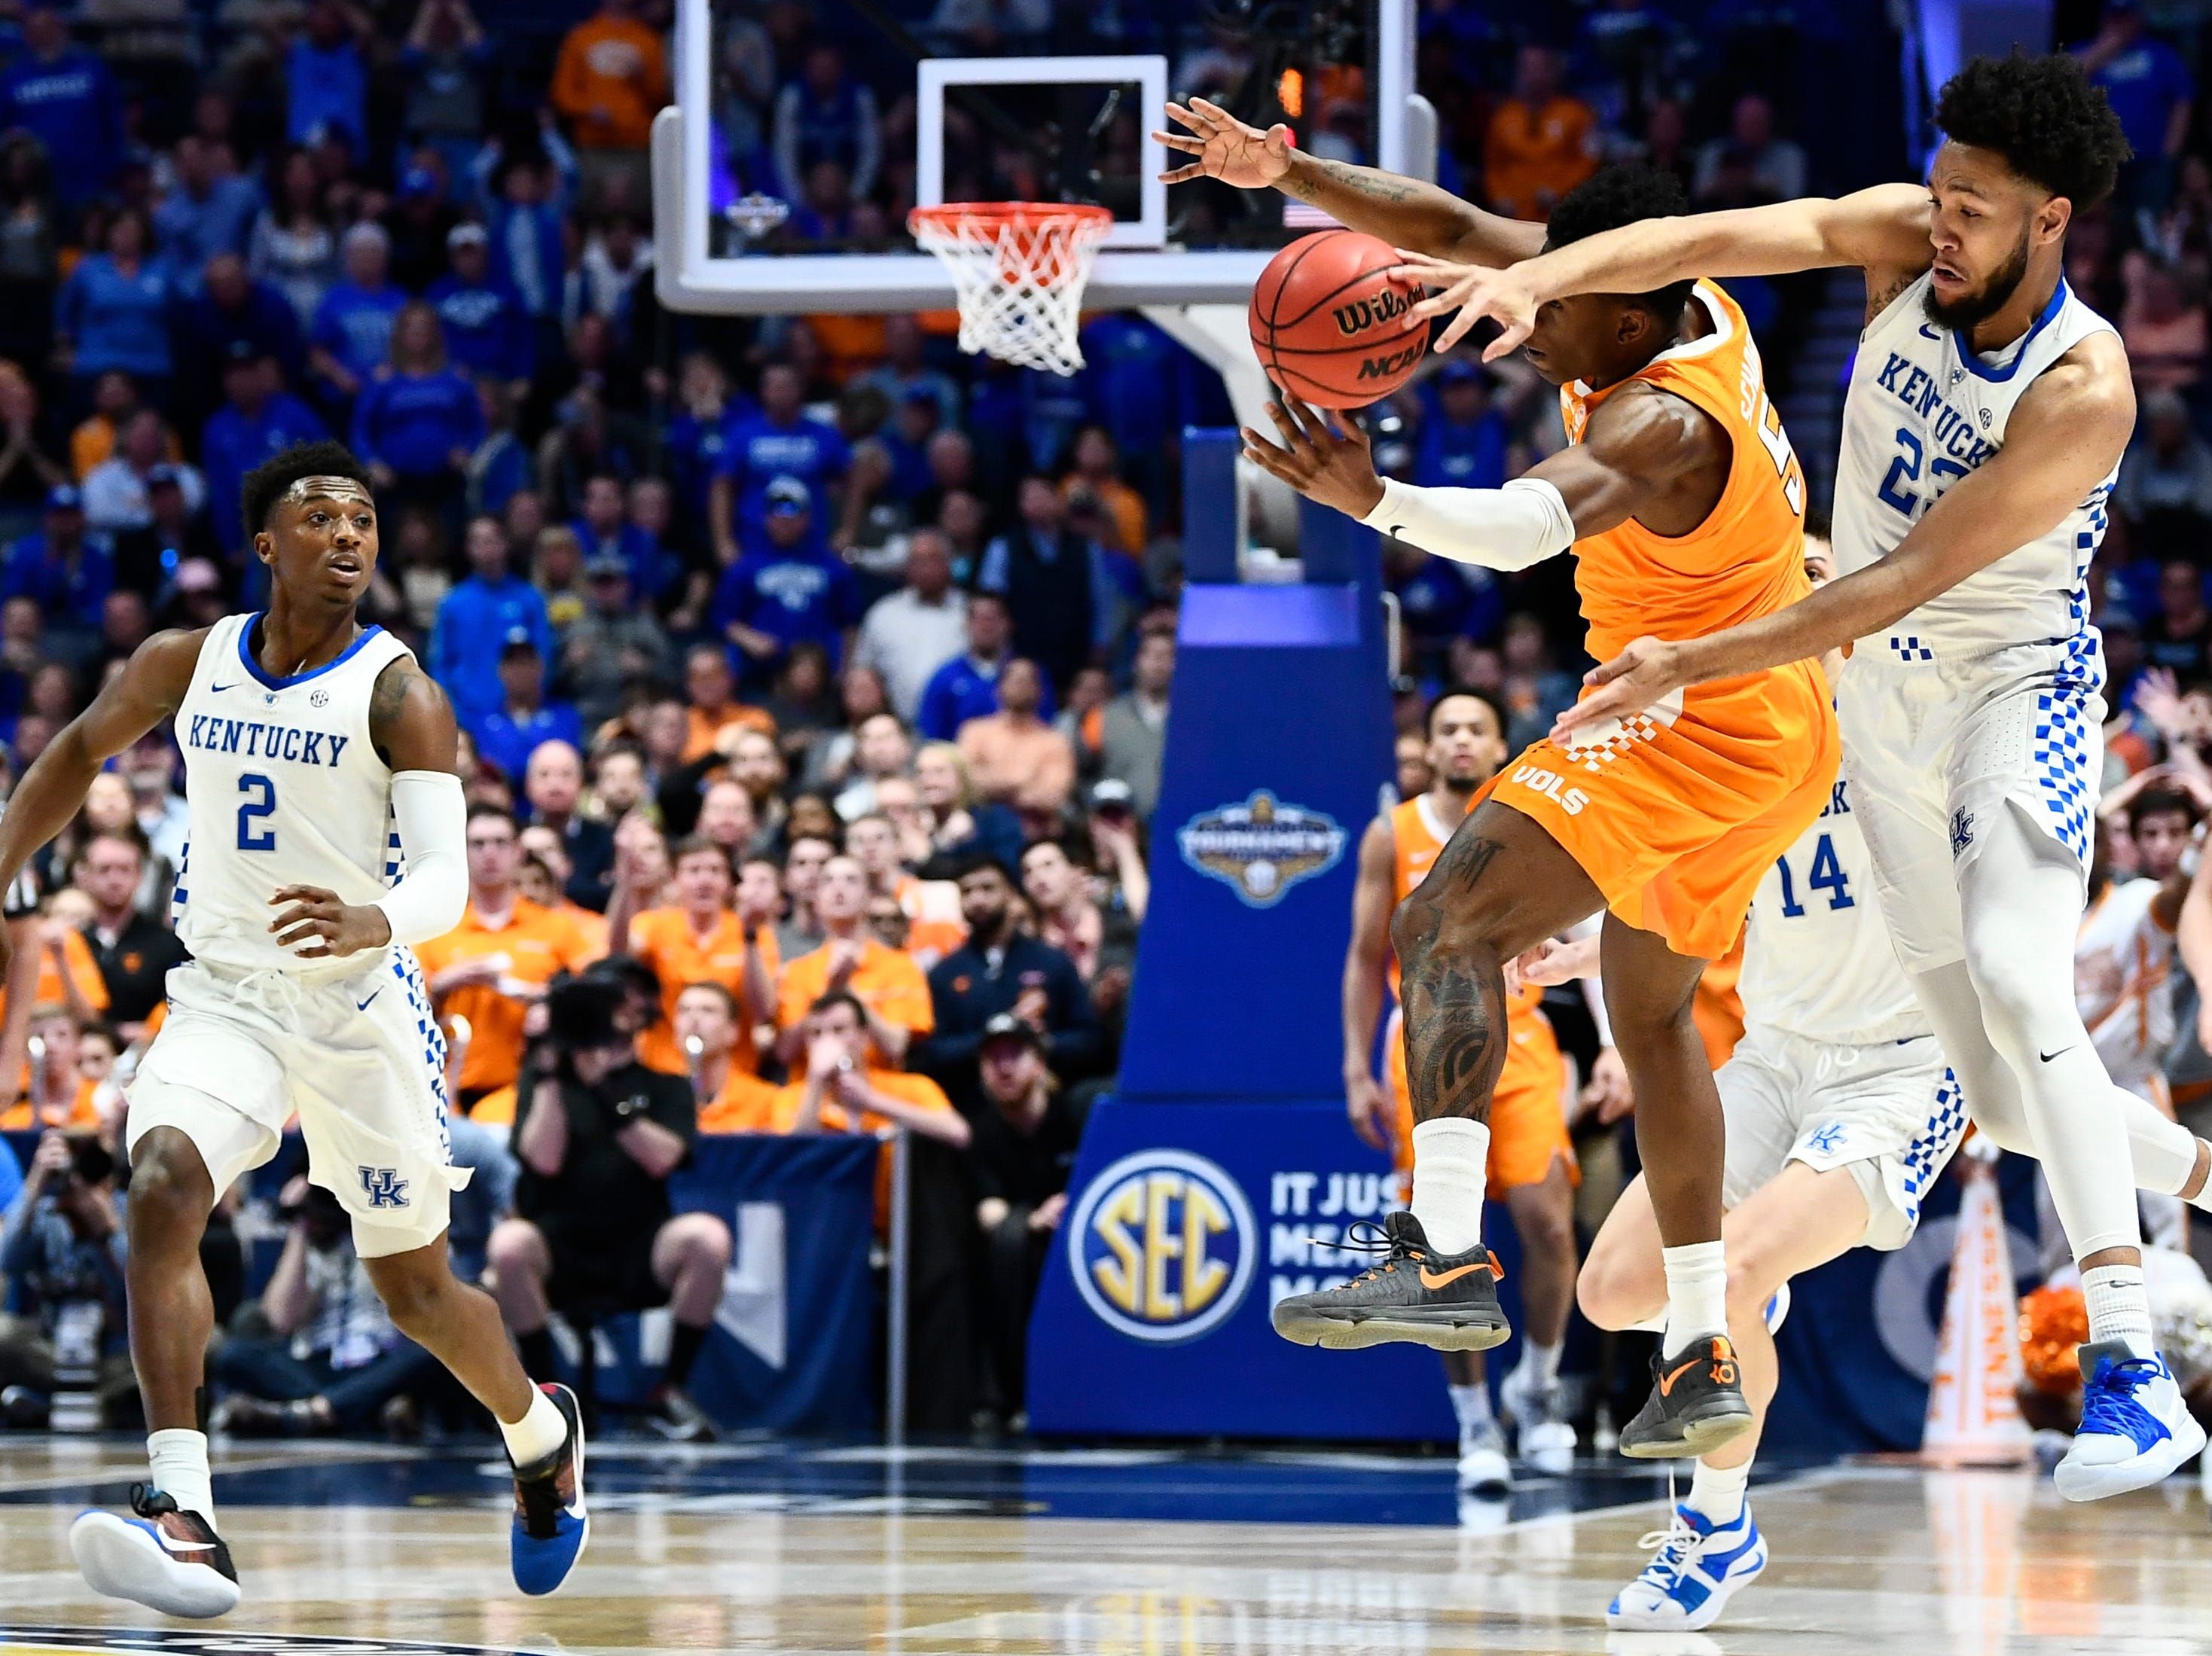 Tennessee guard Admiral Schofield (5) battles Kentucky forward EJ Montgomery (23) during the first half of the SEC Men's Basketball Tournament semifinal game at Bridgestone Arena in Nashville, Tenn., Saturday, March 16, 2019.